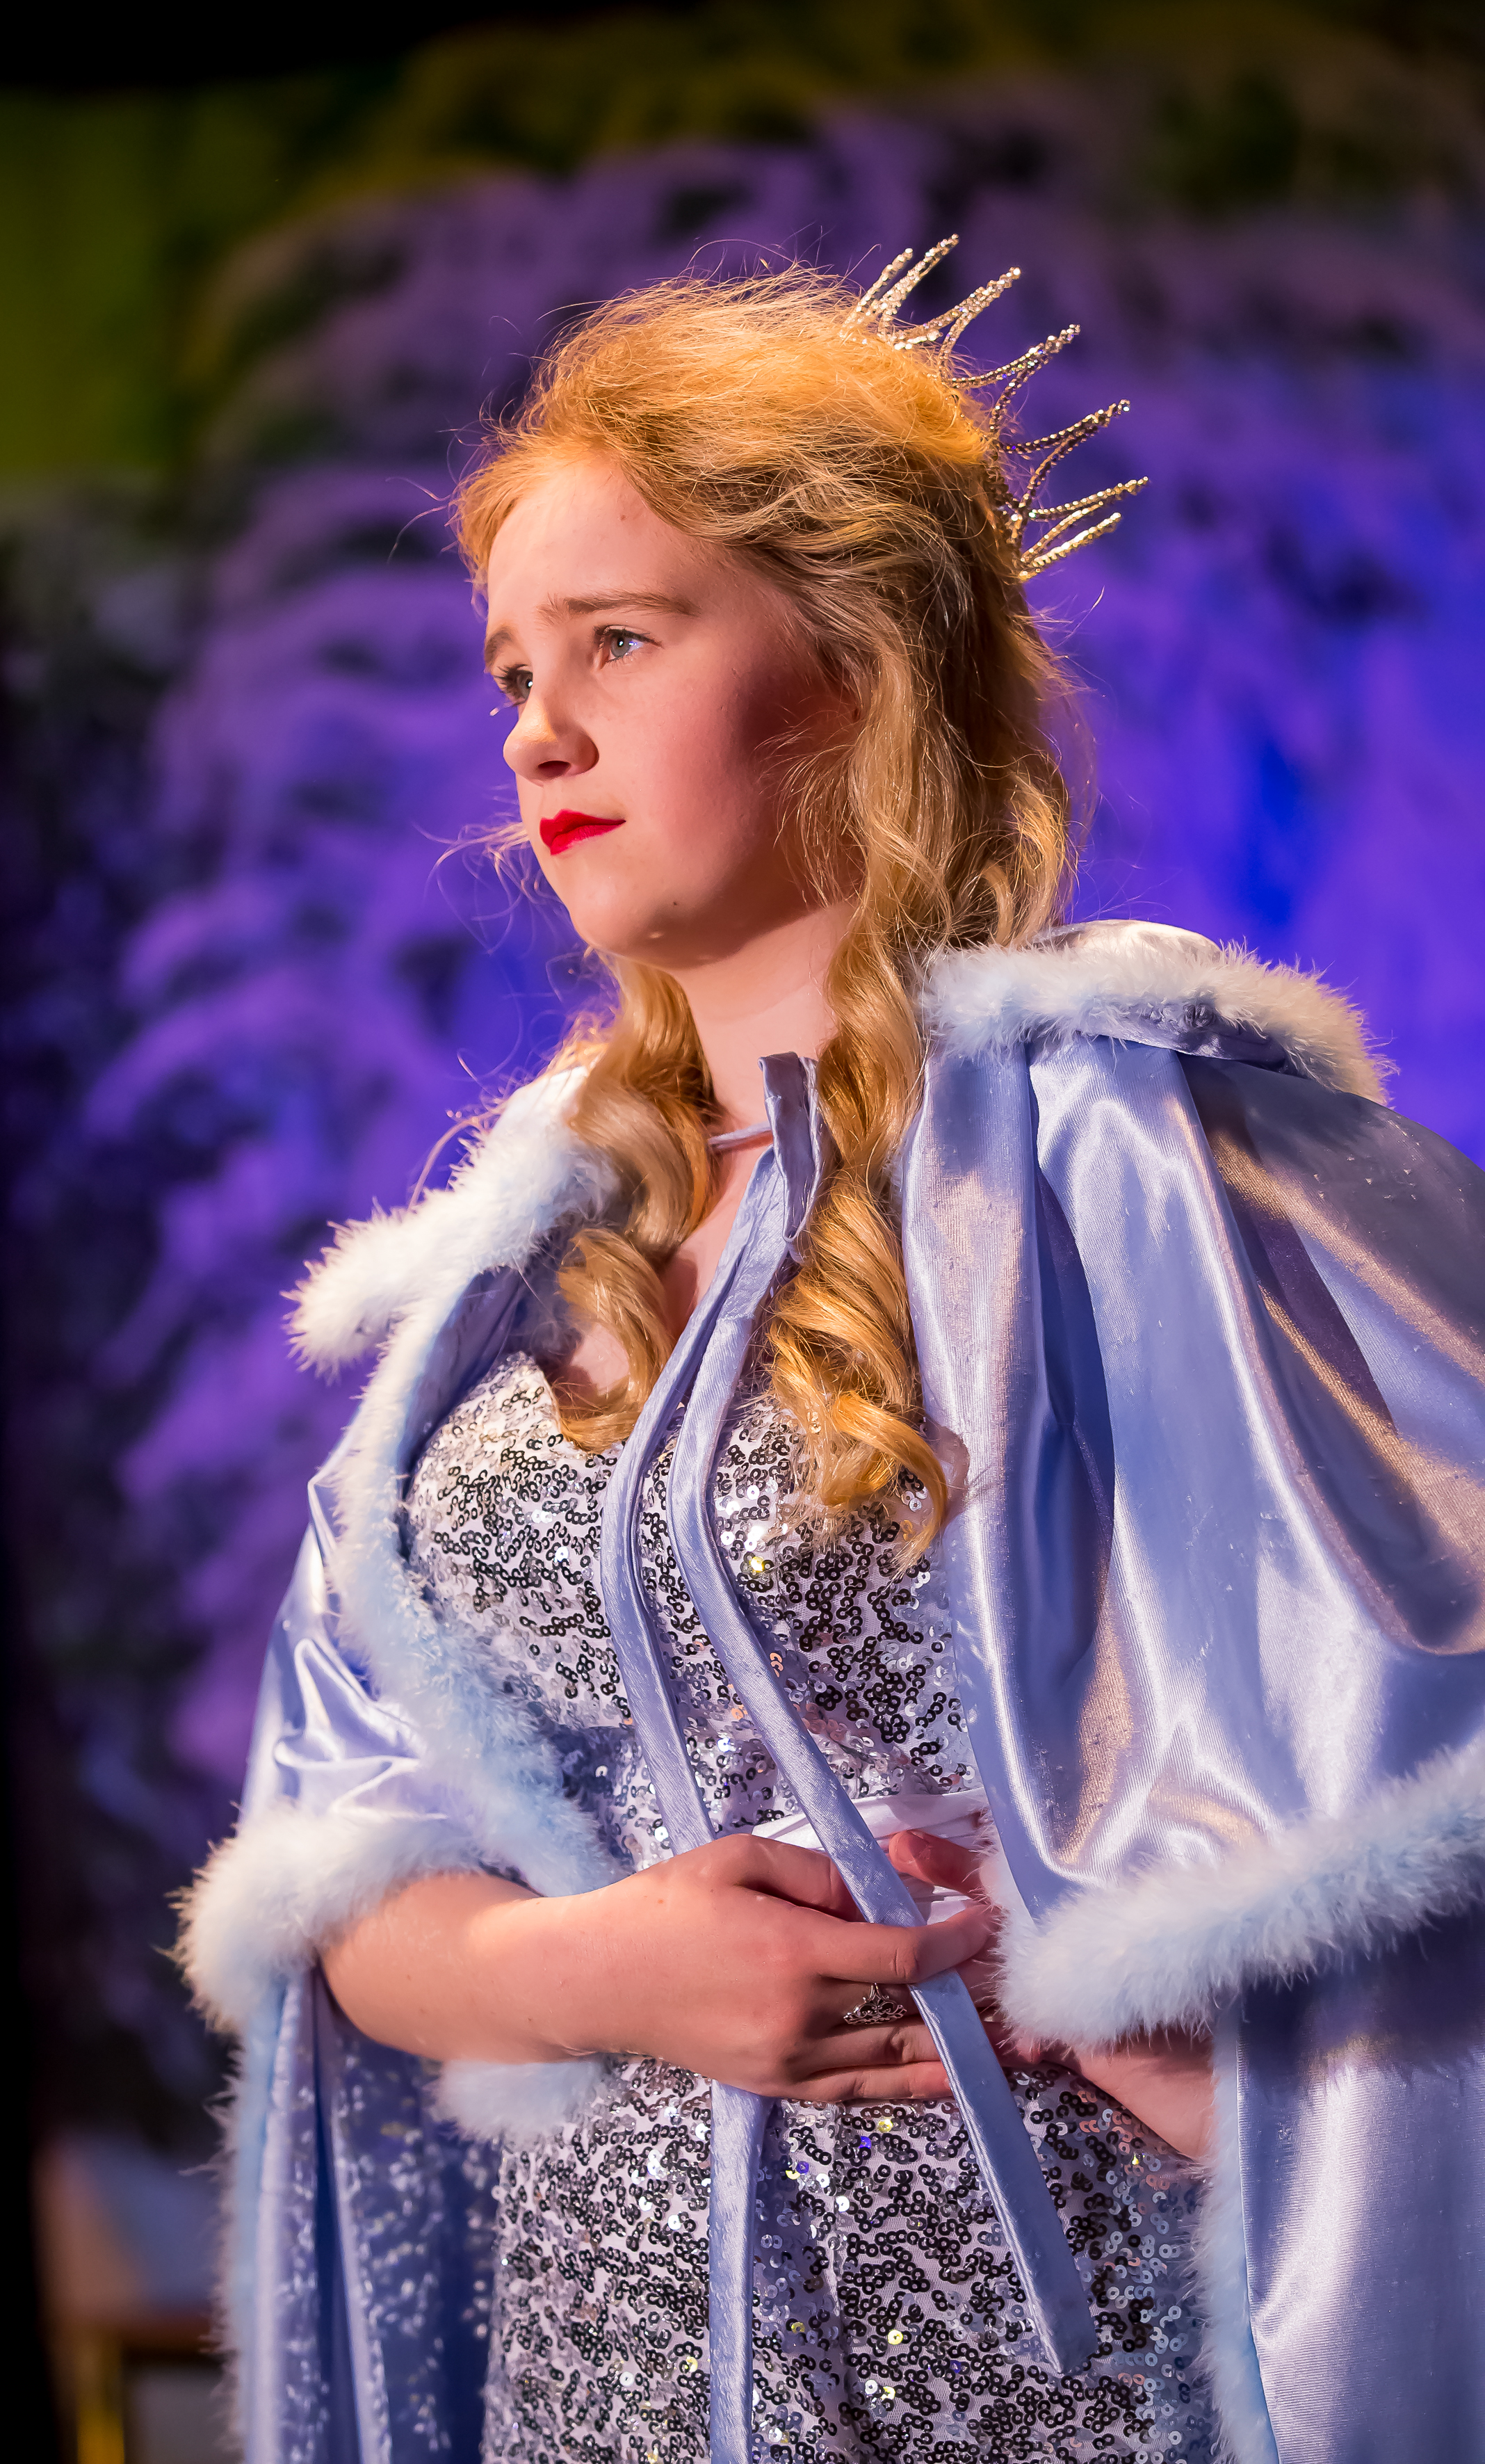 Sedgefield Players Production-The Snow Queen